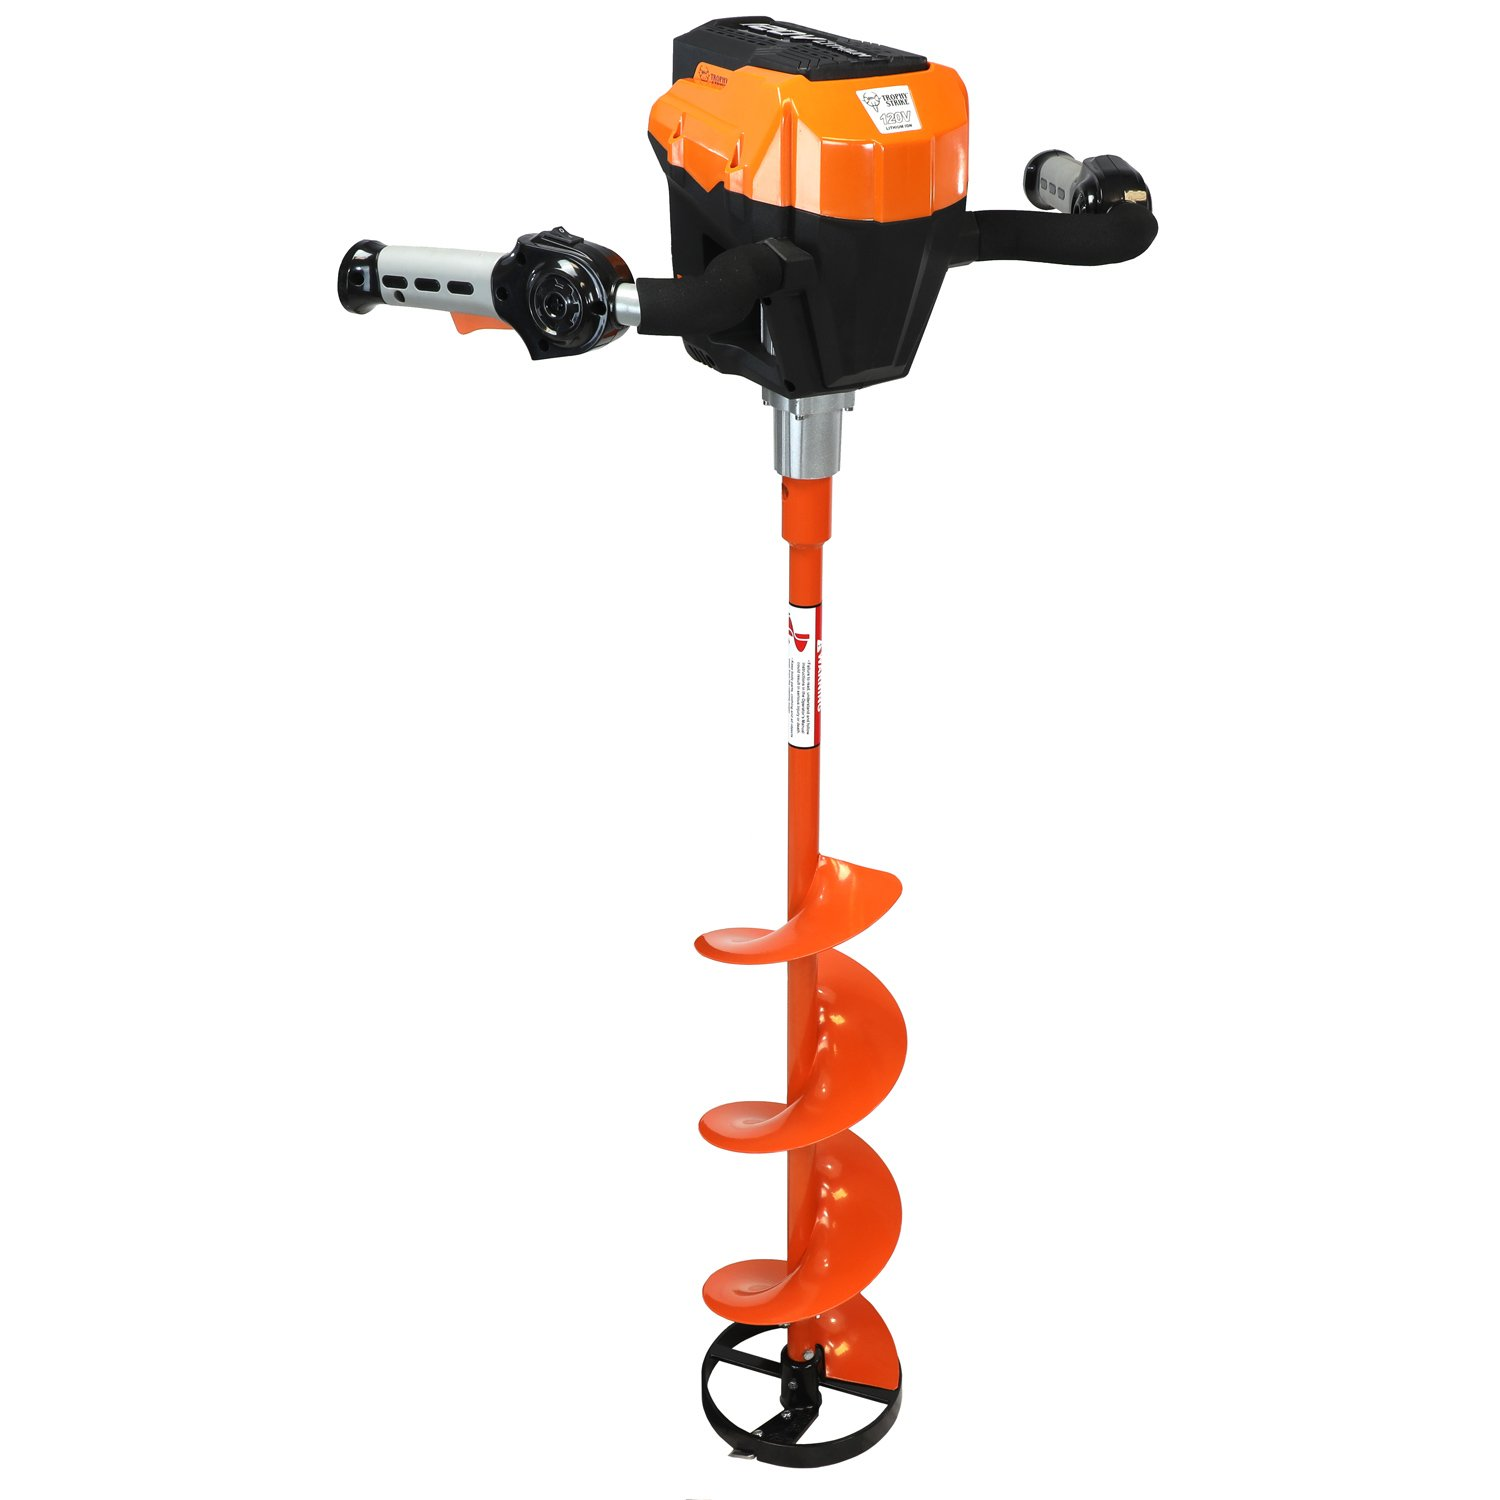 Trophy Strike 120V Ice Auger 2017 Version 120V Lithium Ion Battery Ice Auger - Everything You Need to Start Drilling!